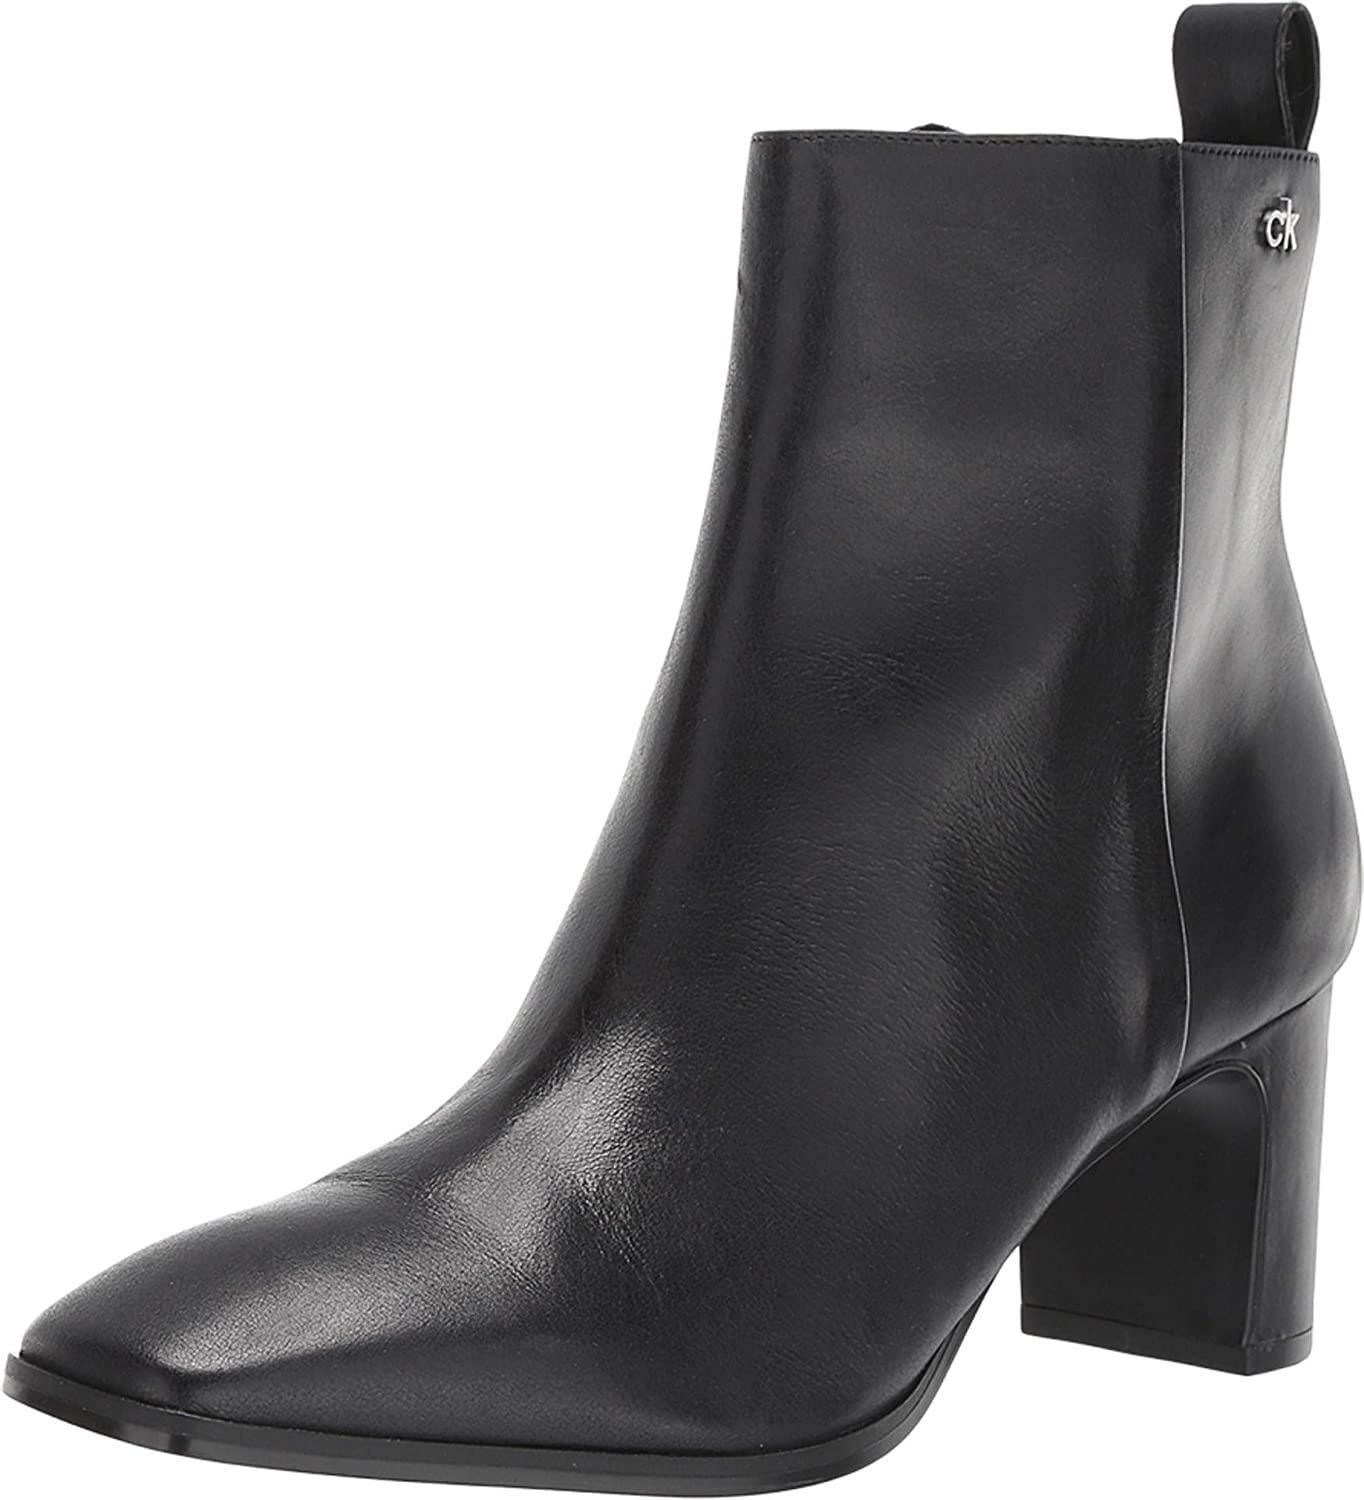 Calvin Klein Special Gifts Campaign Womens Deni Boots Leather Booties Ankle